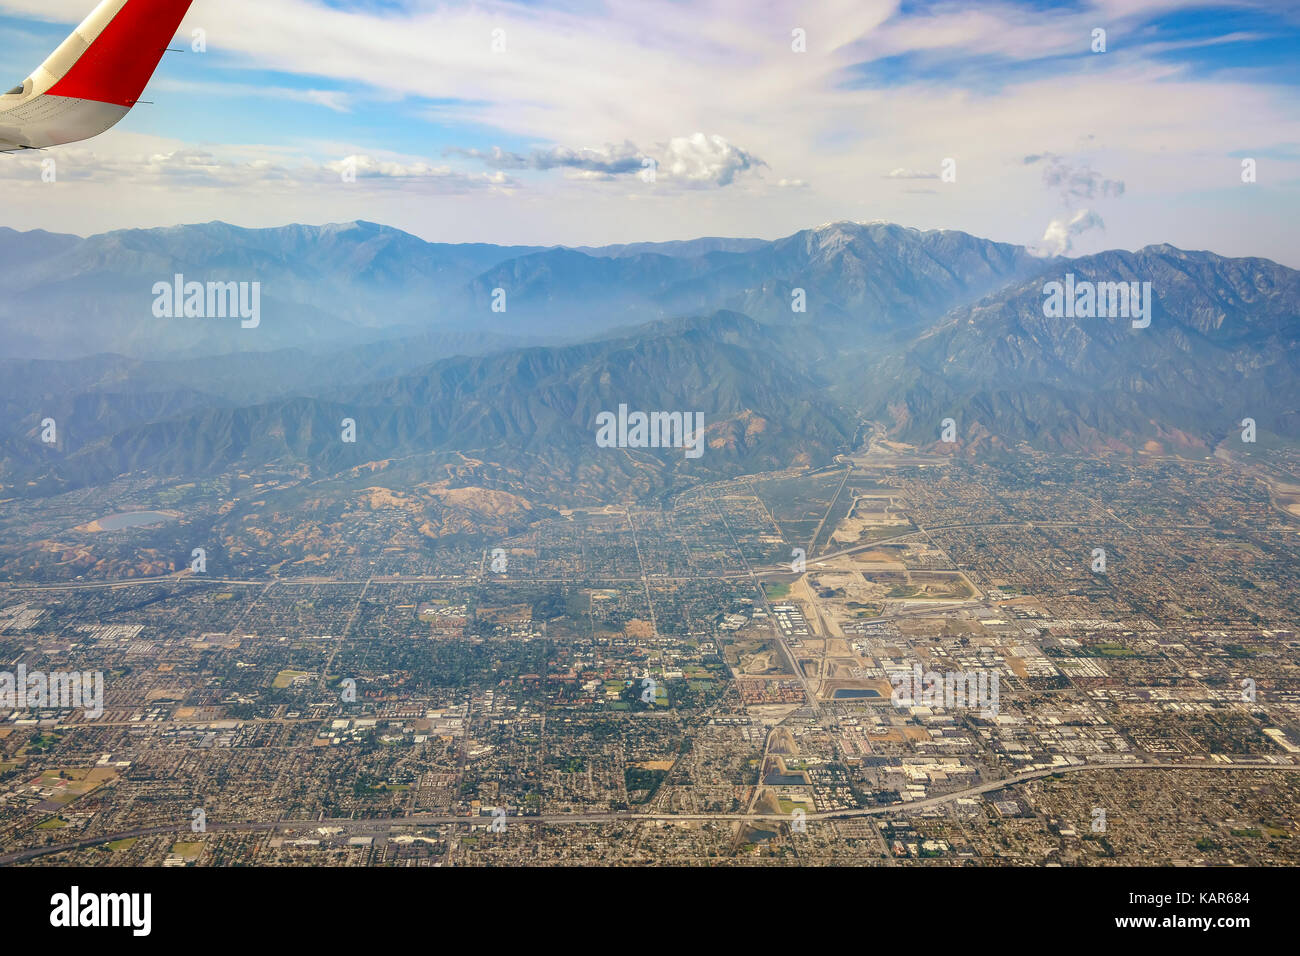 Aerial view of Upland, Claremont view from window seat in an airplane, California, U.S.A. - Stock Image